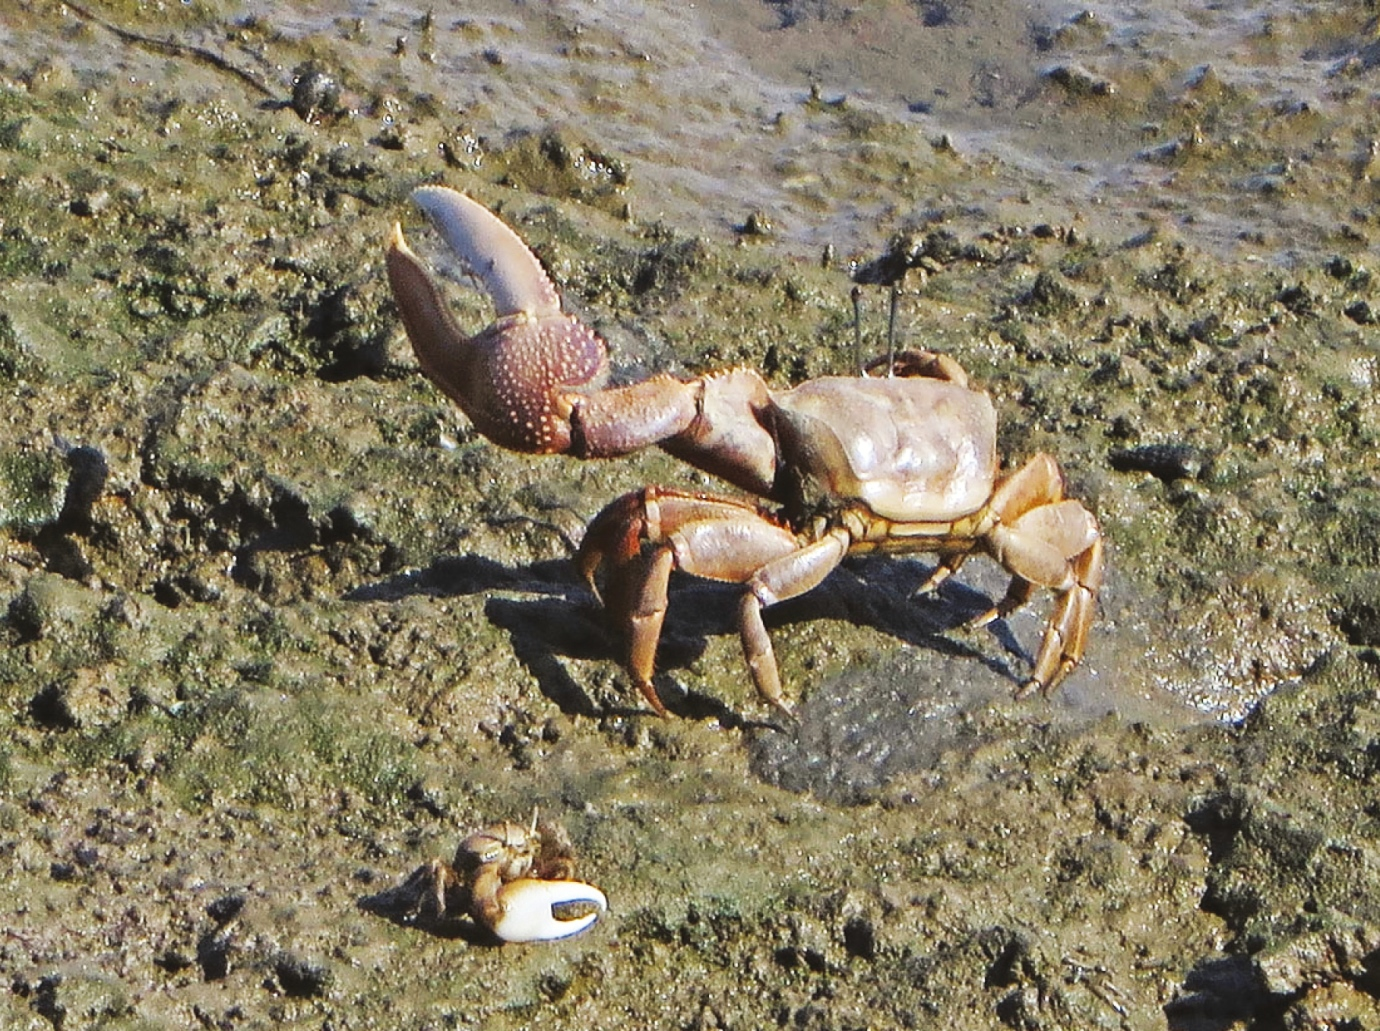 A displaying male large fiddler crab alongside a smaller male crab (Leptuca crenula) at Huntington Beach, California, USA. Male fiddler crabs use their large dominant claws to compete with each other for mates, and fiddlers are suspected to play an important role in wetlands by aerating mud flats with their underground burrows.